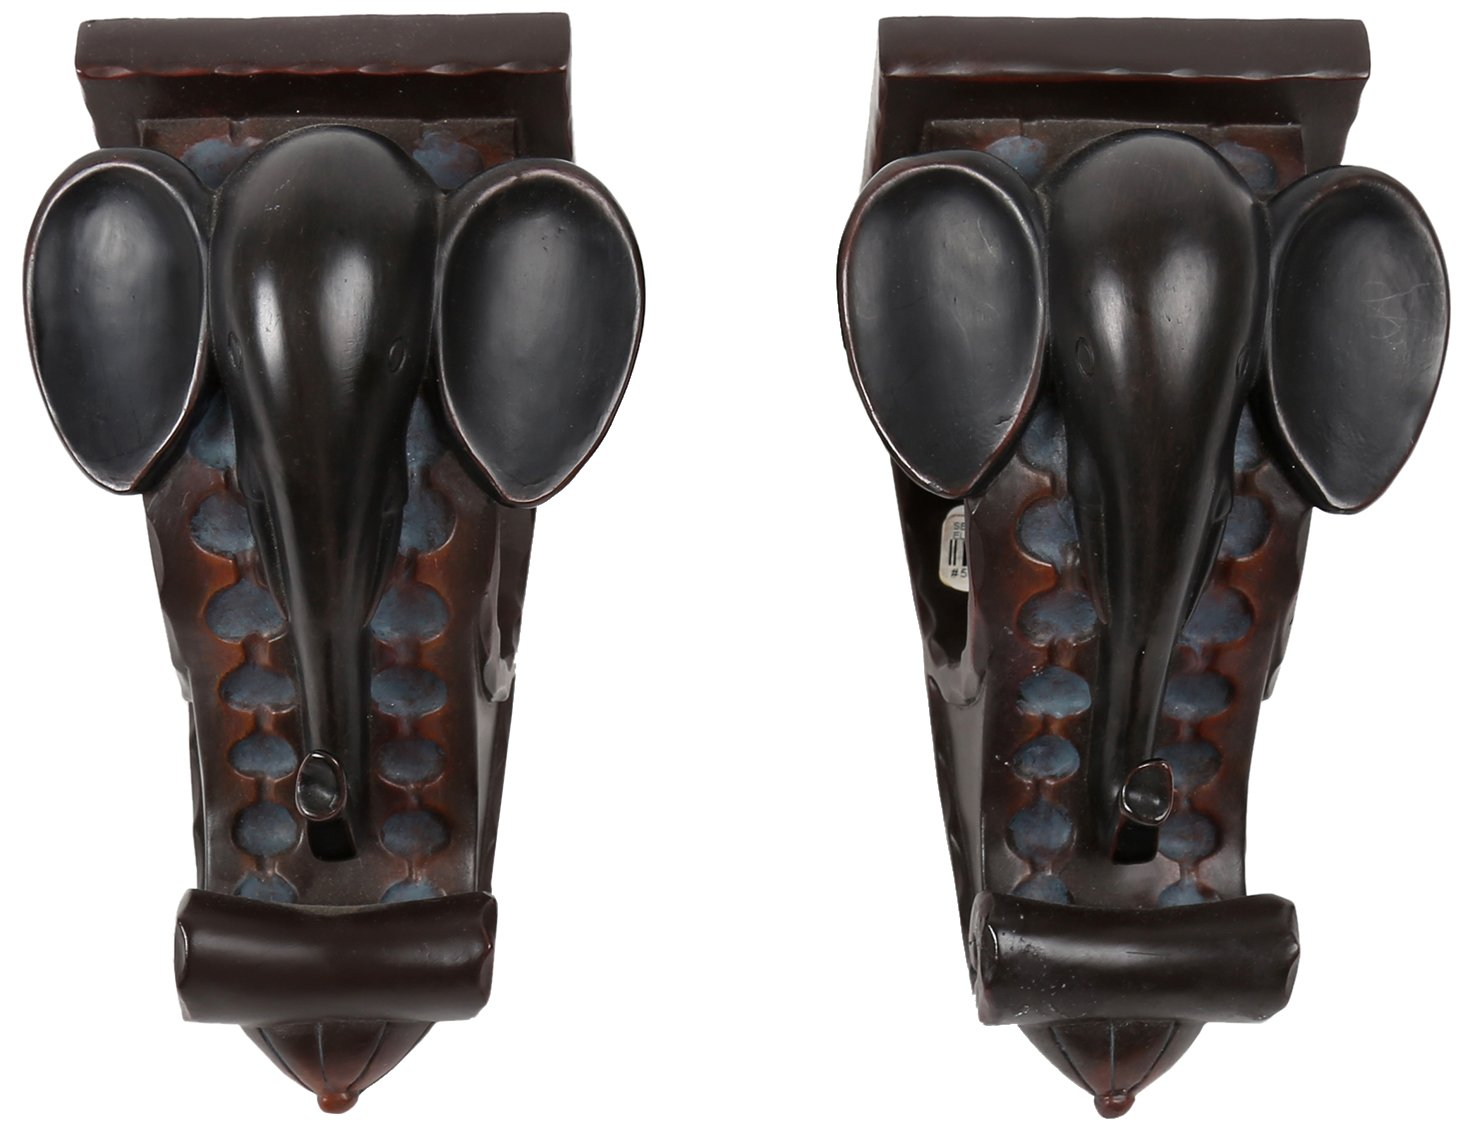 Truu Design Elephant Curtain Rod Holder, Set of 2, 6 inches, Brown